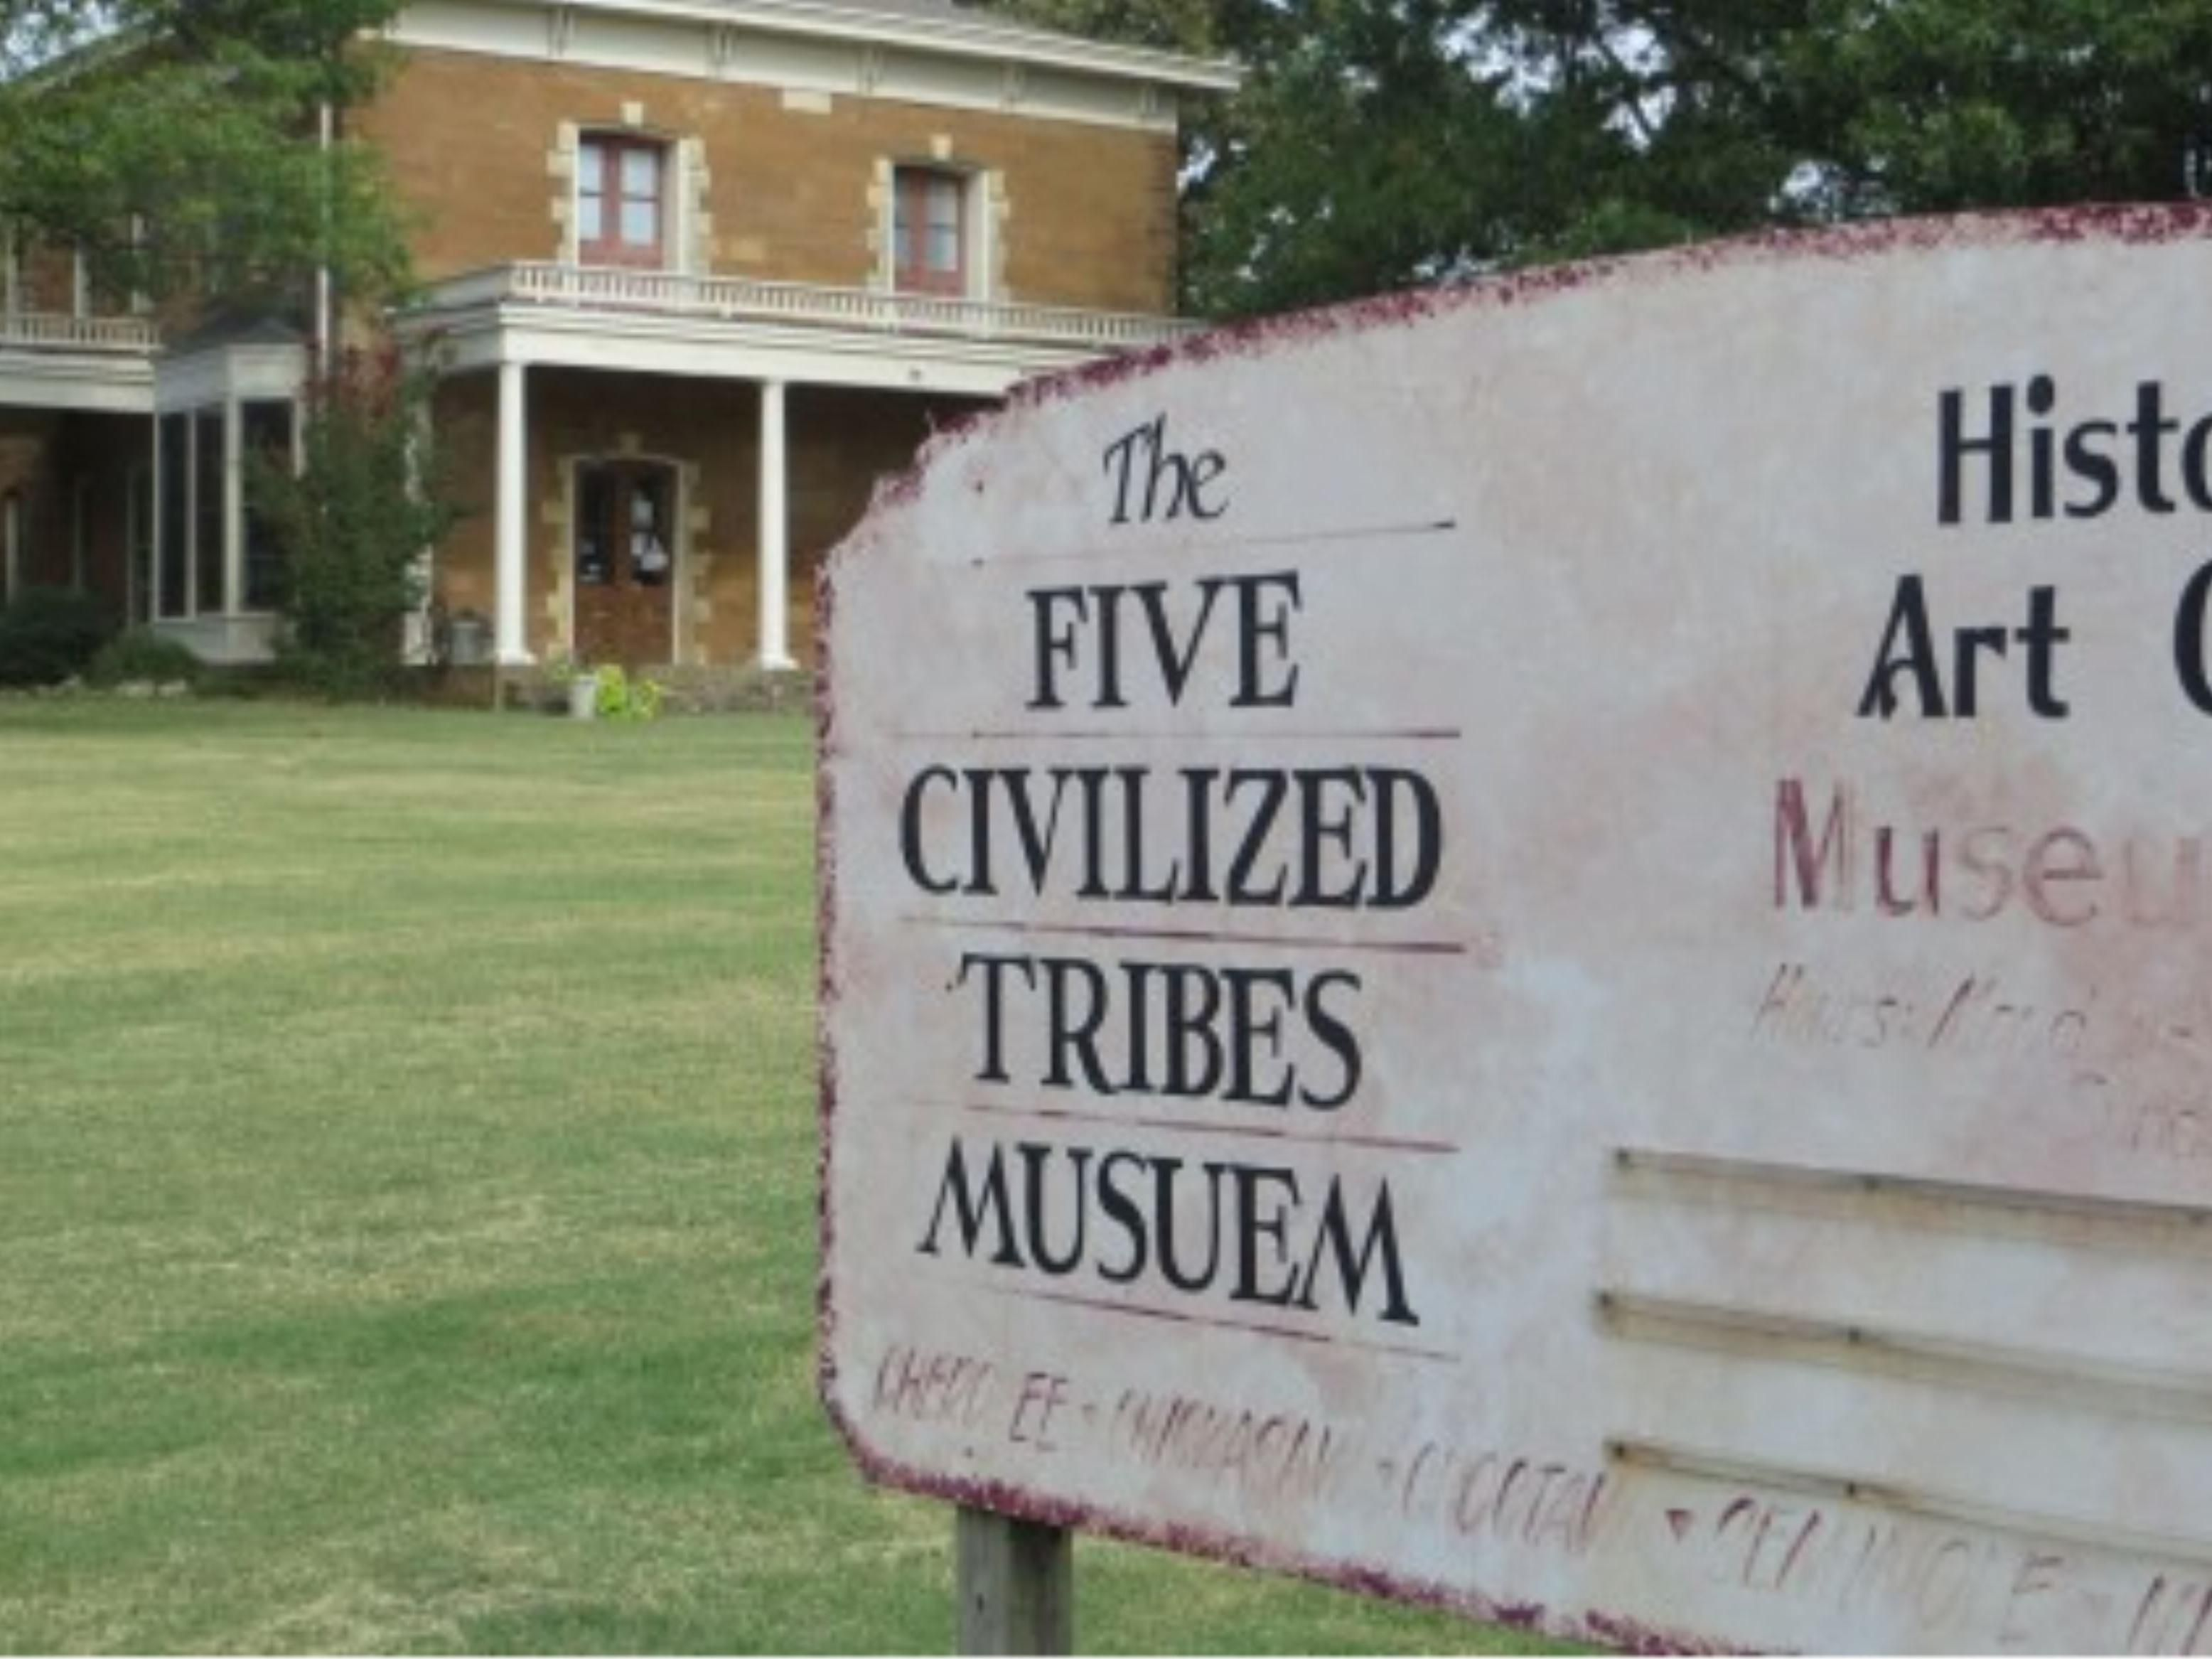 Take a tour of the Five Civilized Tribes Museum.